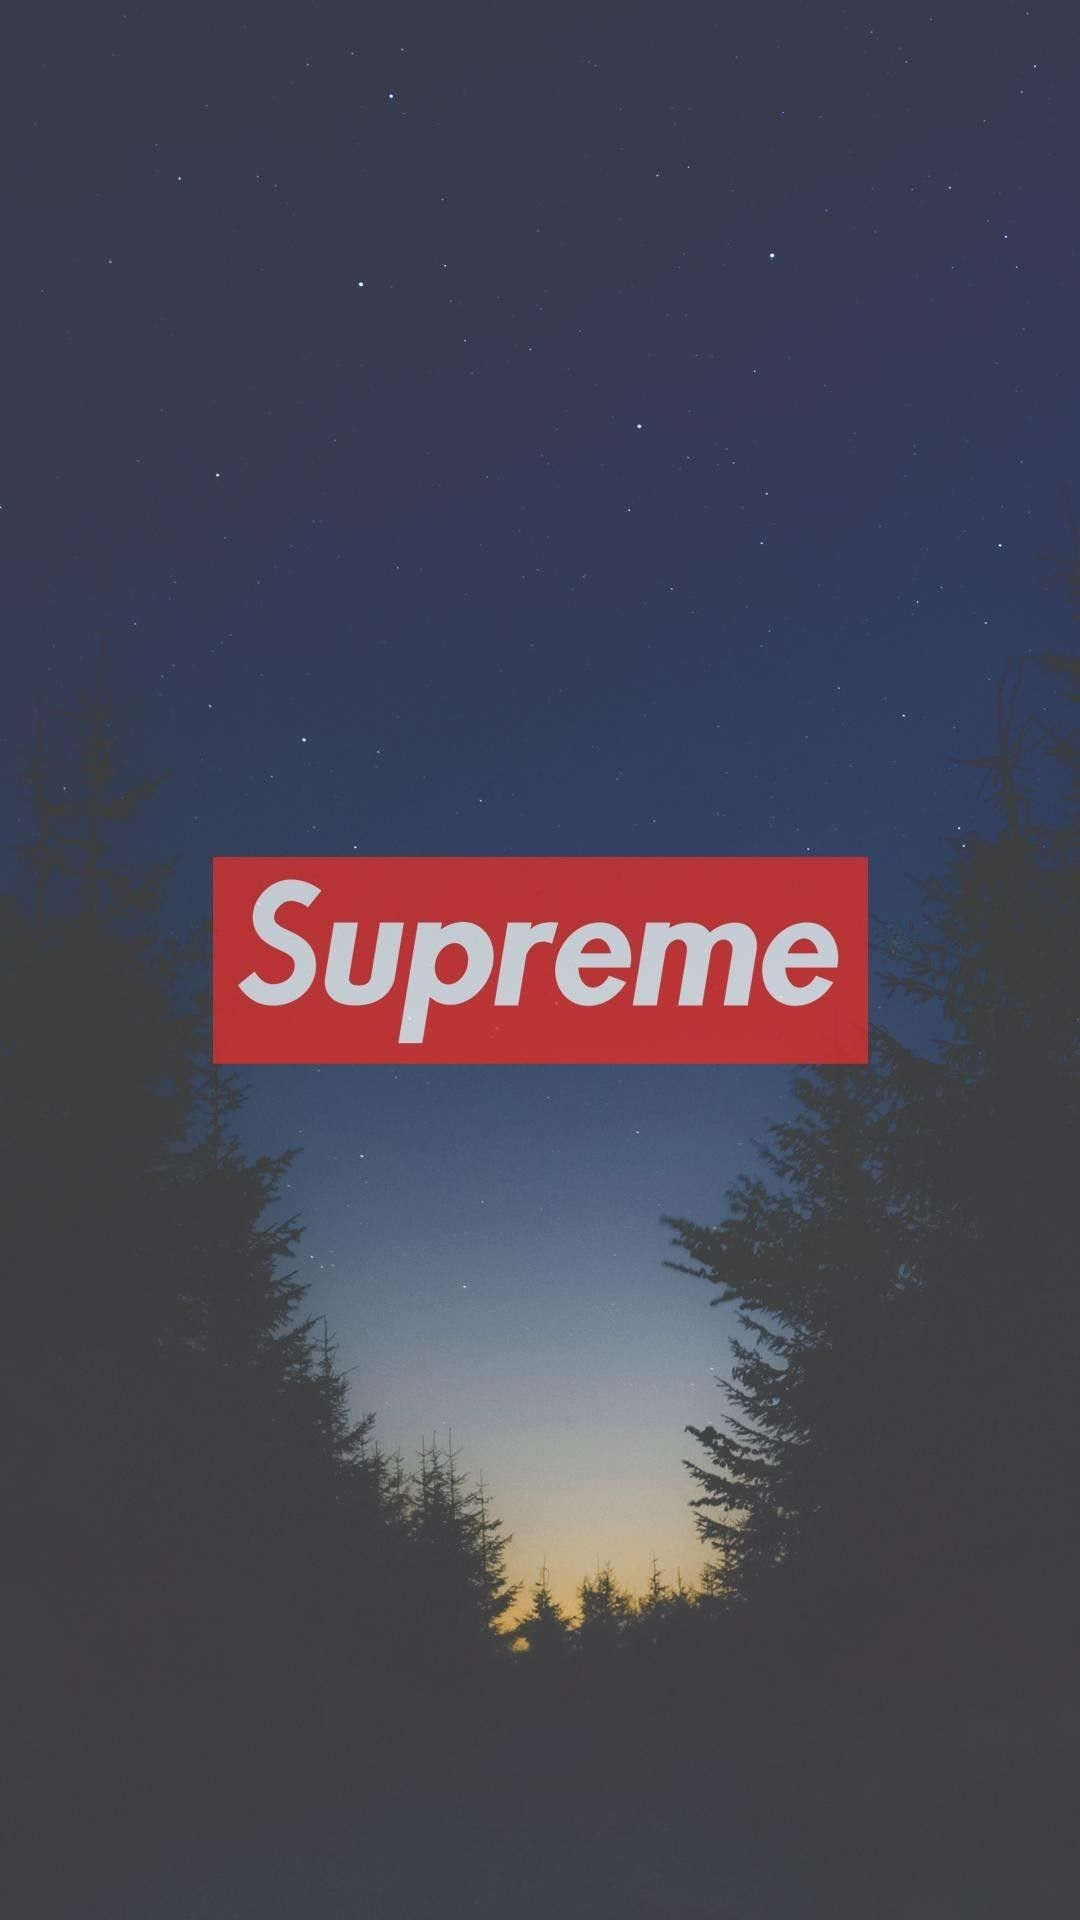 Supreme Wallpaper Iphone 5